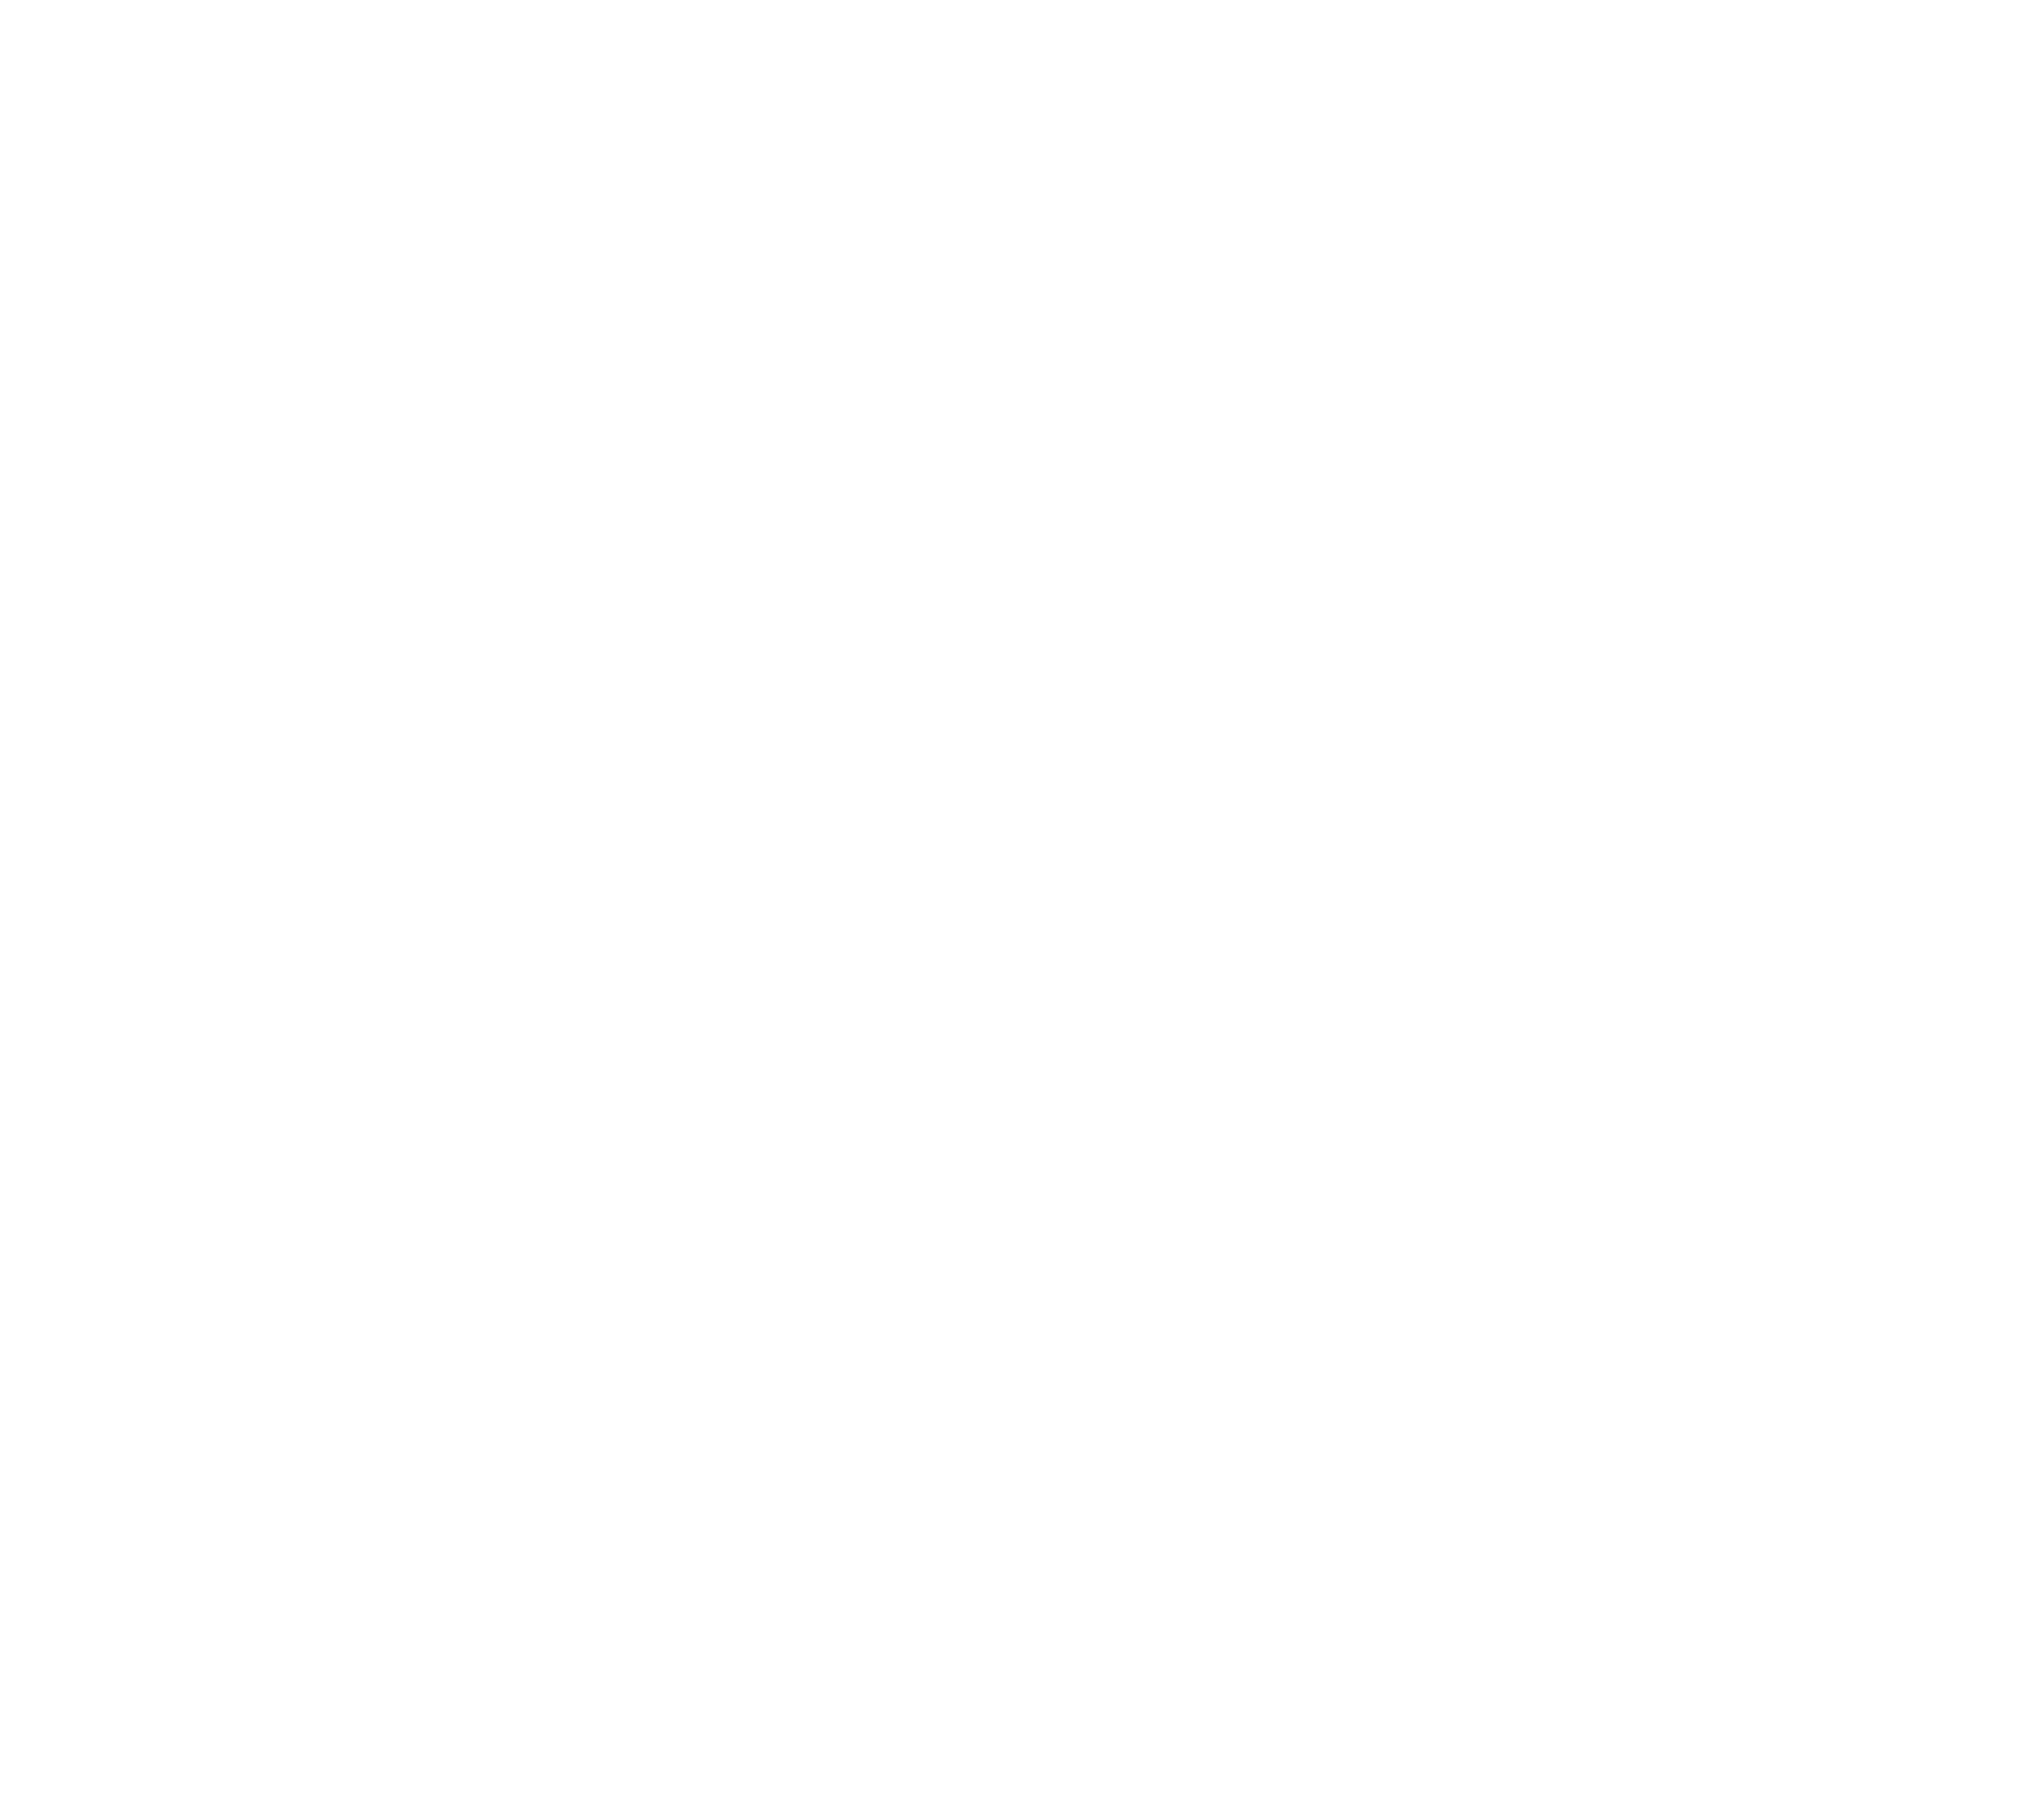 Text reads: 'Fixed-rate paid search campaigns; Get found on the first page of the largest search engines in the world by traffic that matters. Yes, of course this includes Google. We're a Google Premier Partner.'